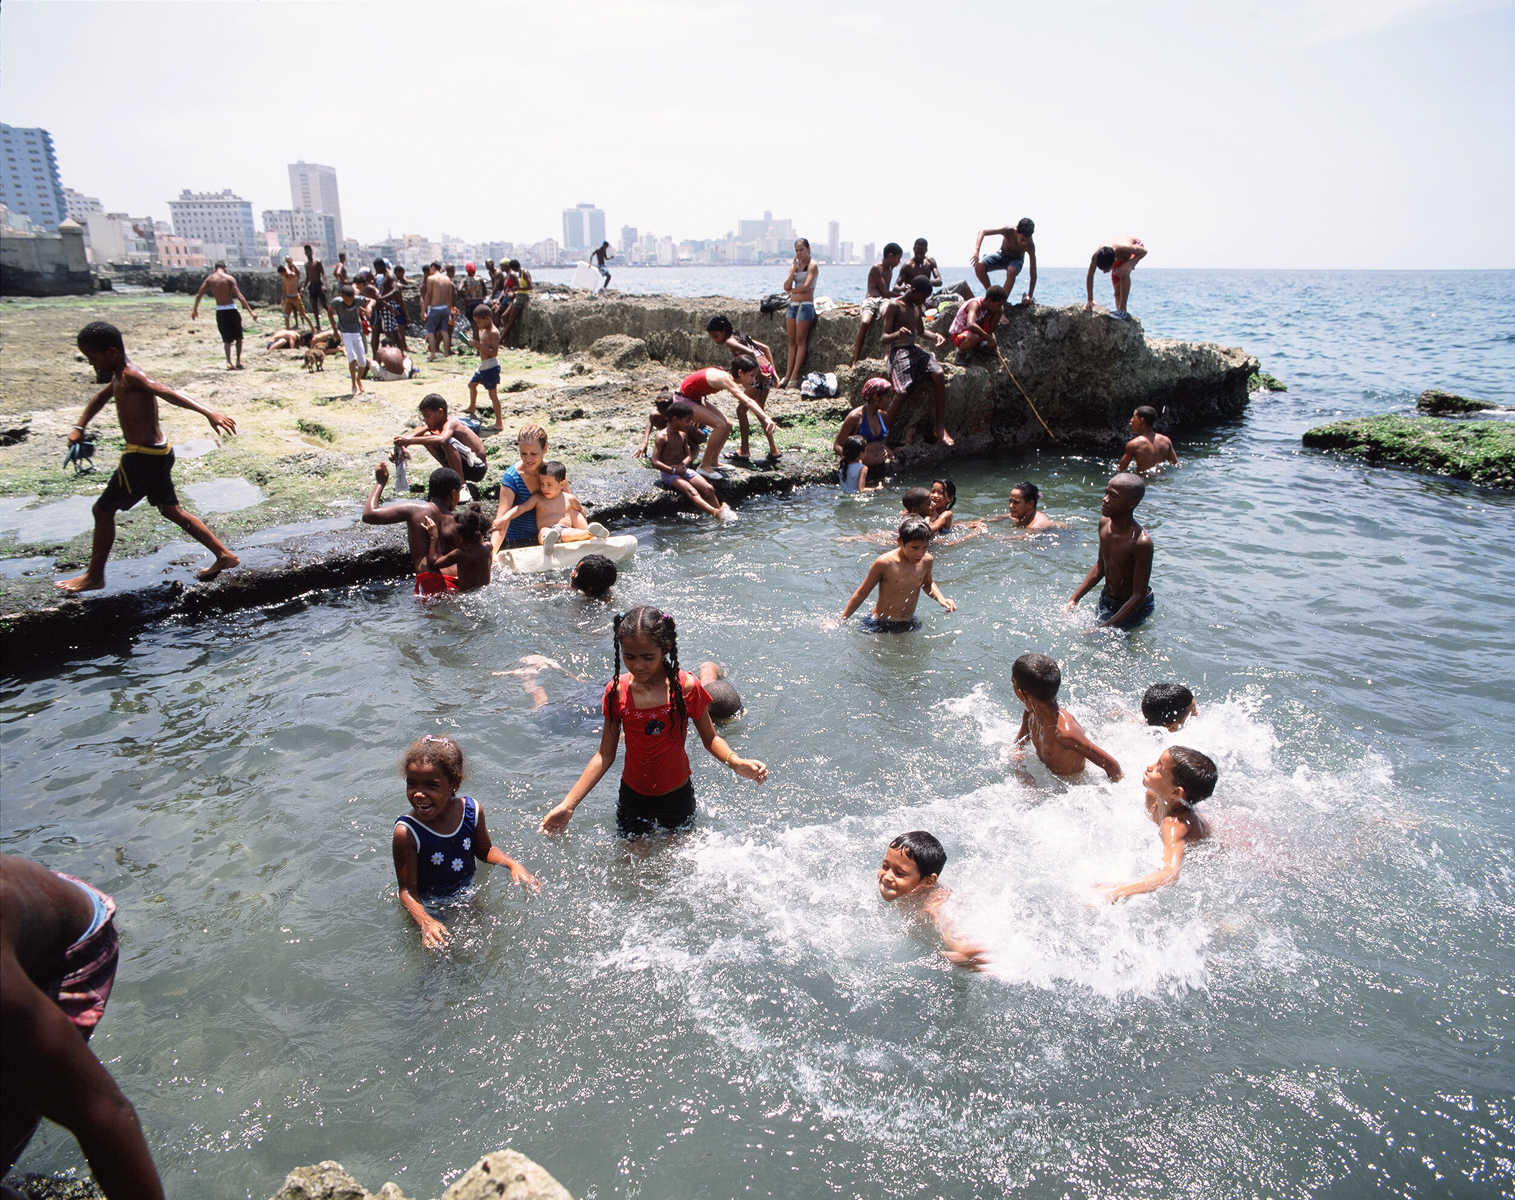 As summer begins to heat up, Enmauel, Hamilie, their younger sister, and their cousin, Gretchel, enjoy a day of swimming at the Malecon.Malecon, Havana, Cuba